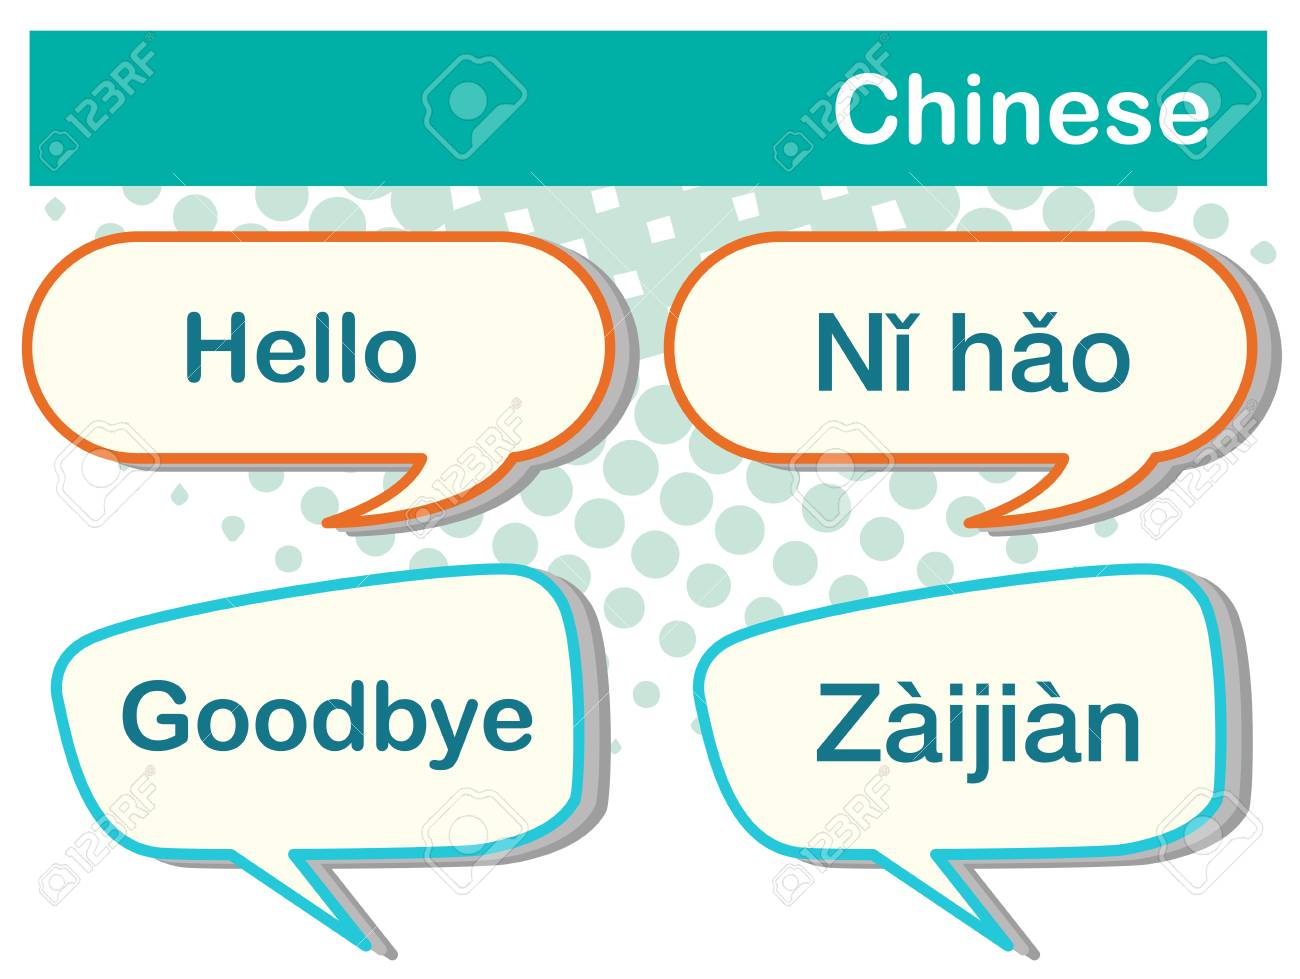 Greeting Words In Chinese Language Illustration Royalty Free